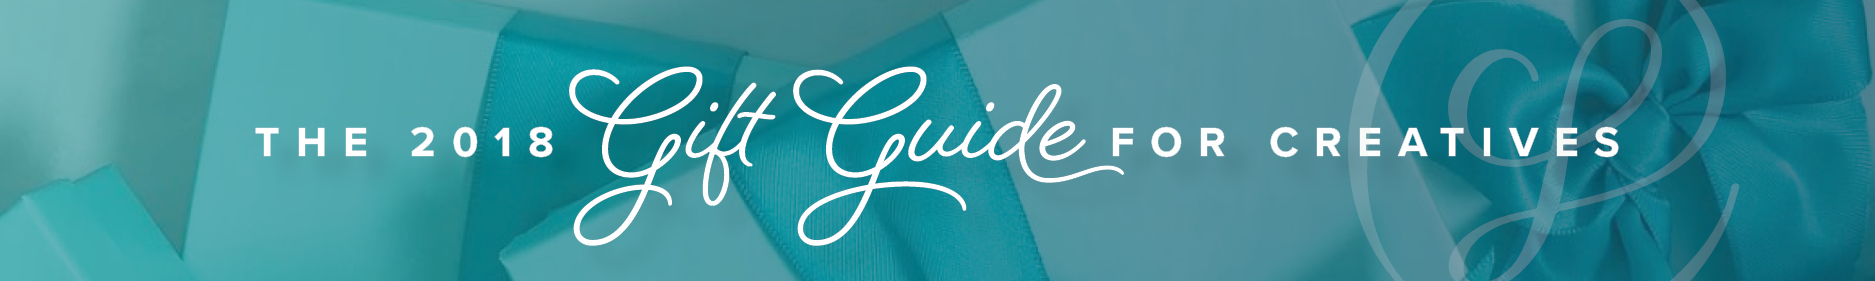 Society for Creative Founders - gift guide for creatives.png